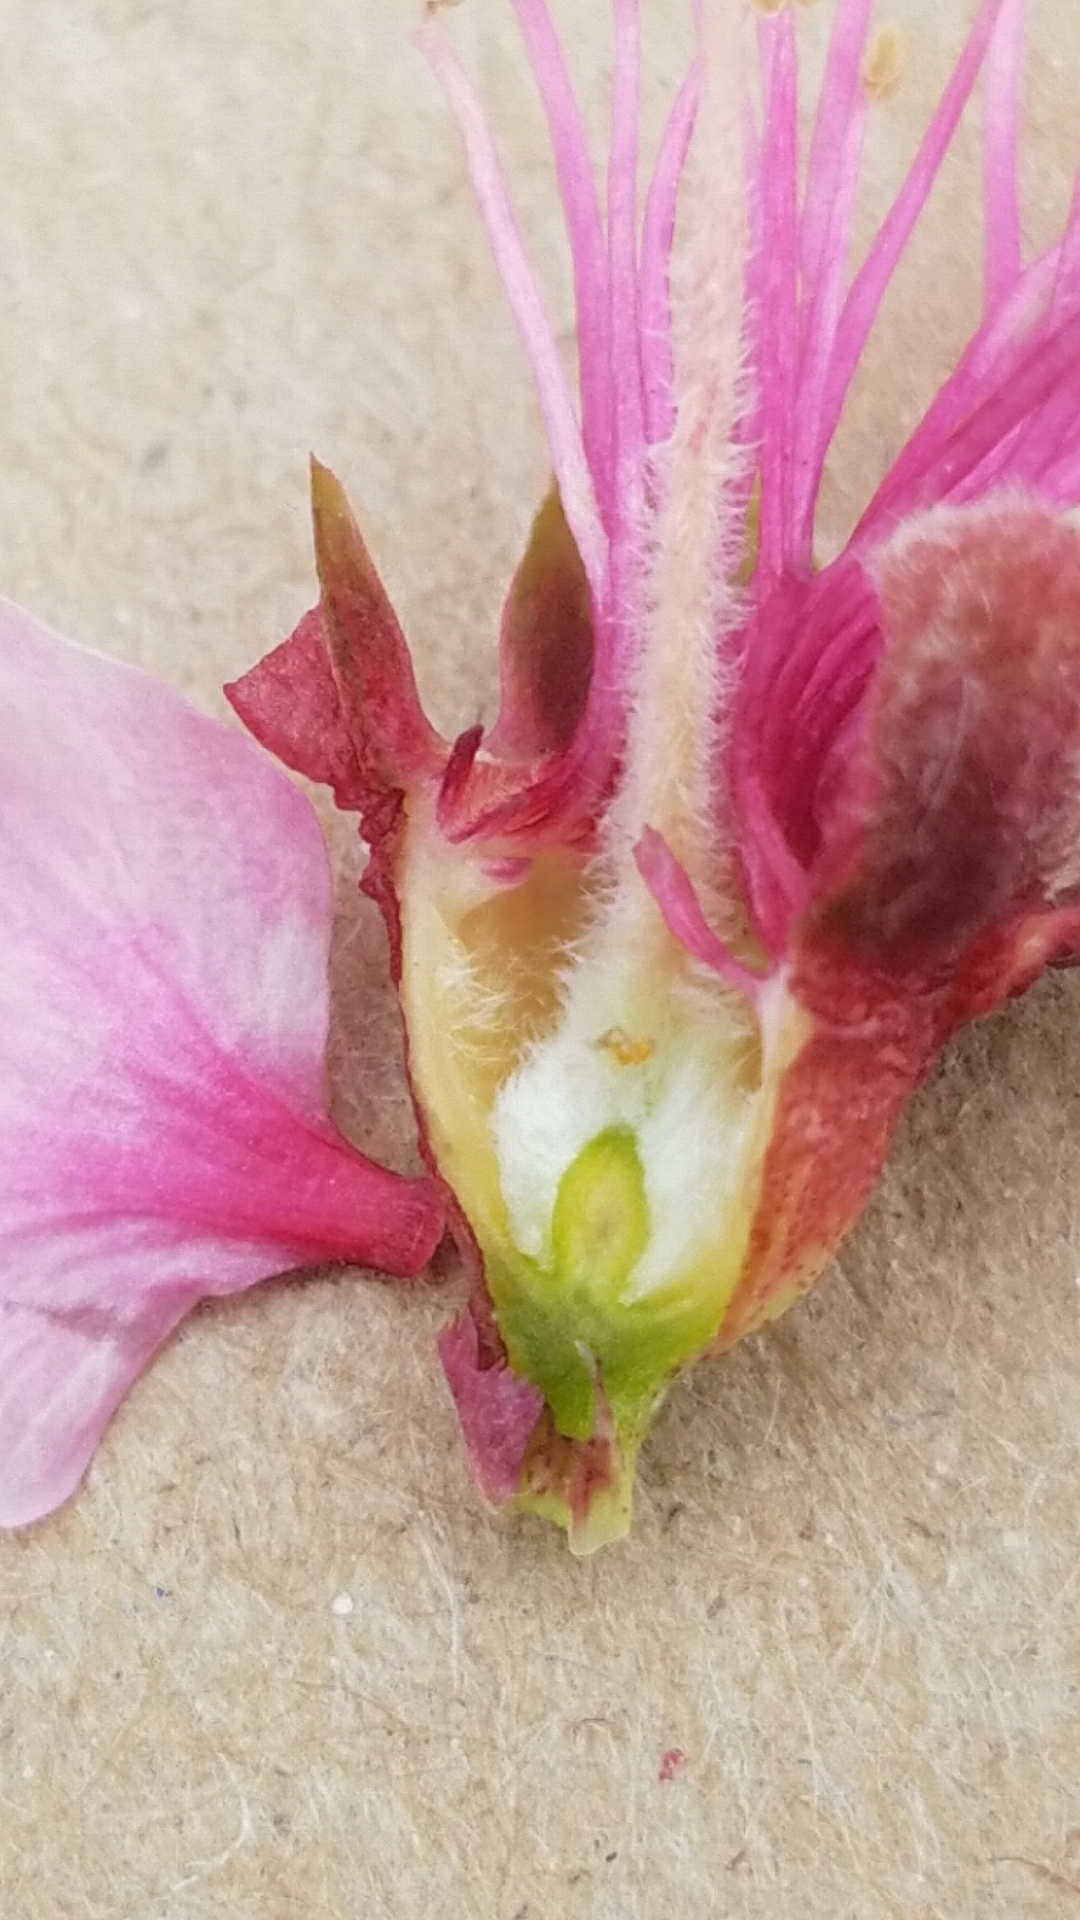 Peach flower damage